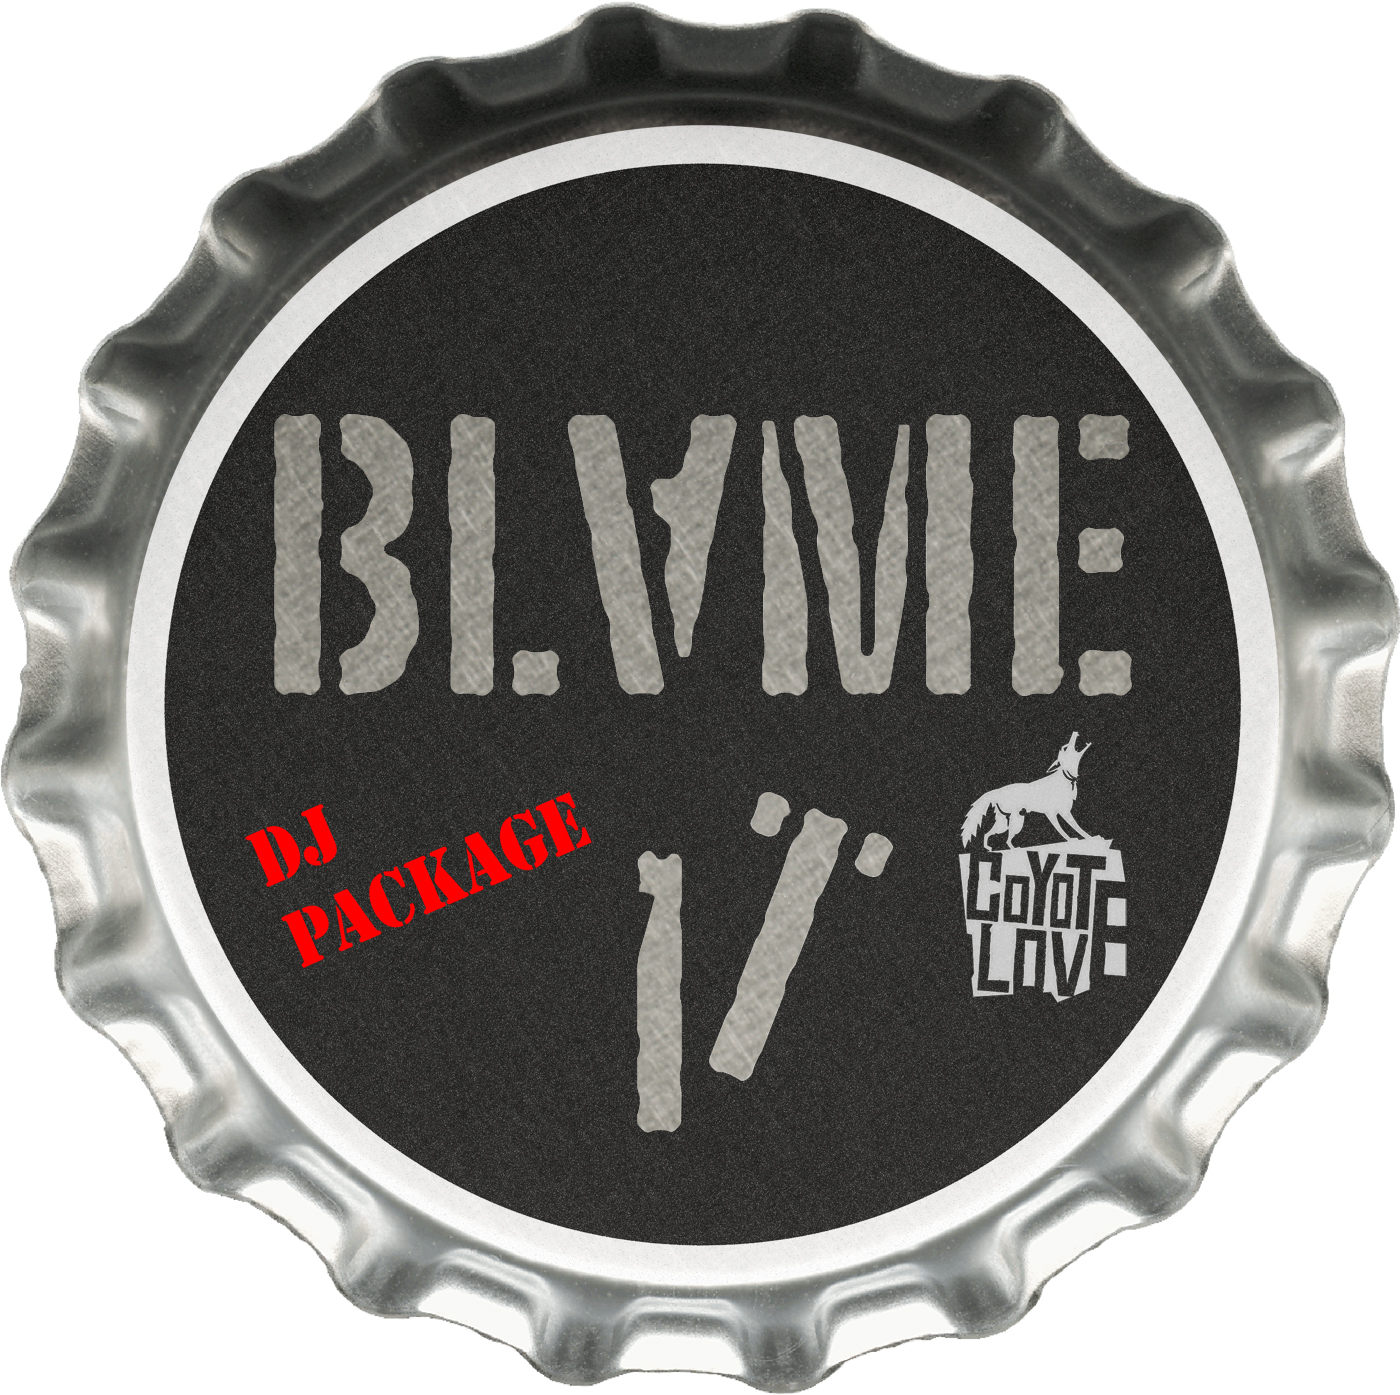 Blame It is available everywhere smart shoppers by 70's Porno Lounge style music